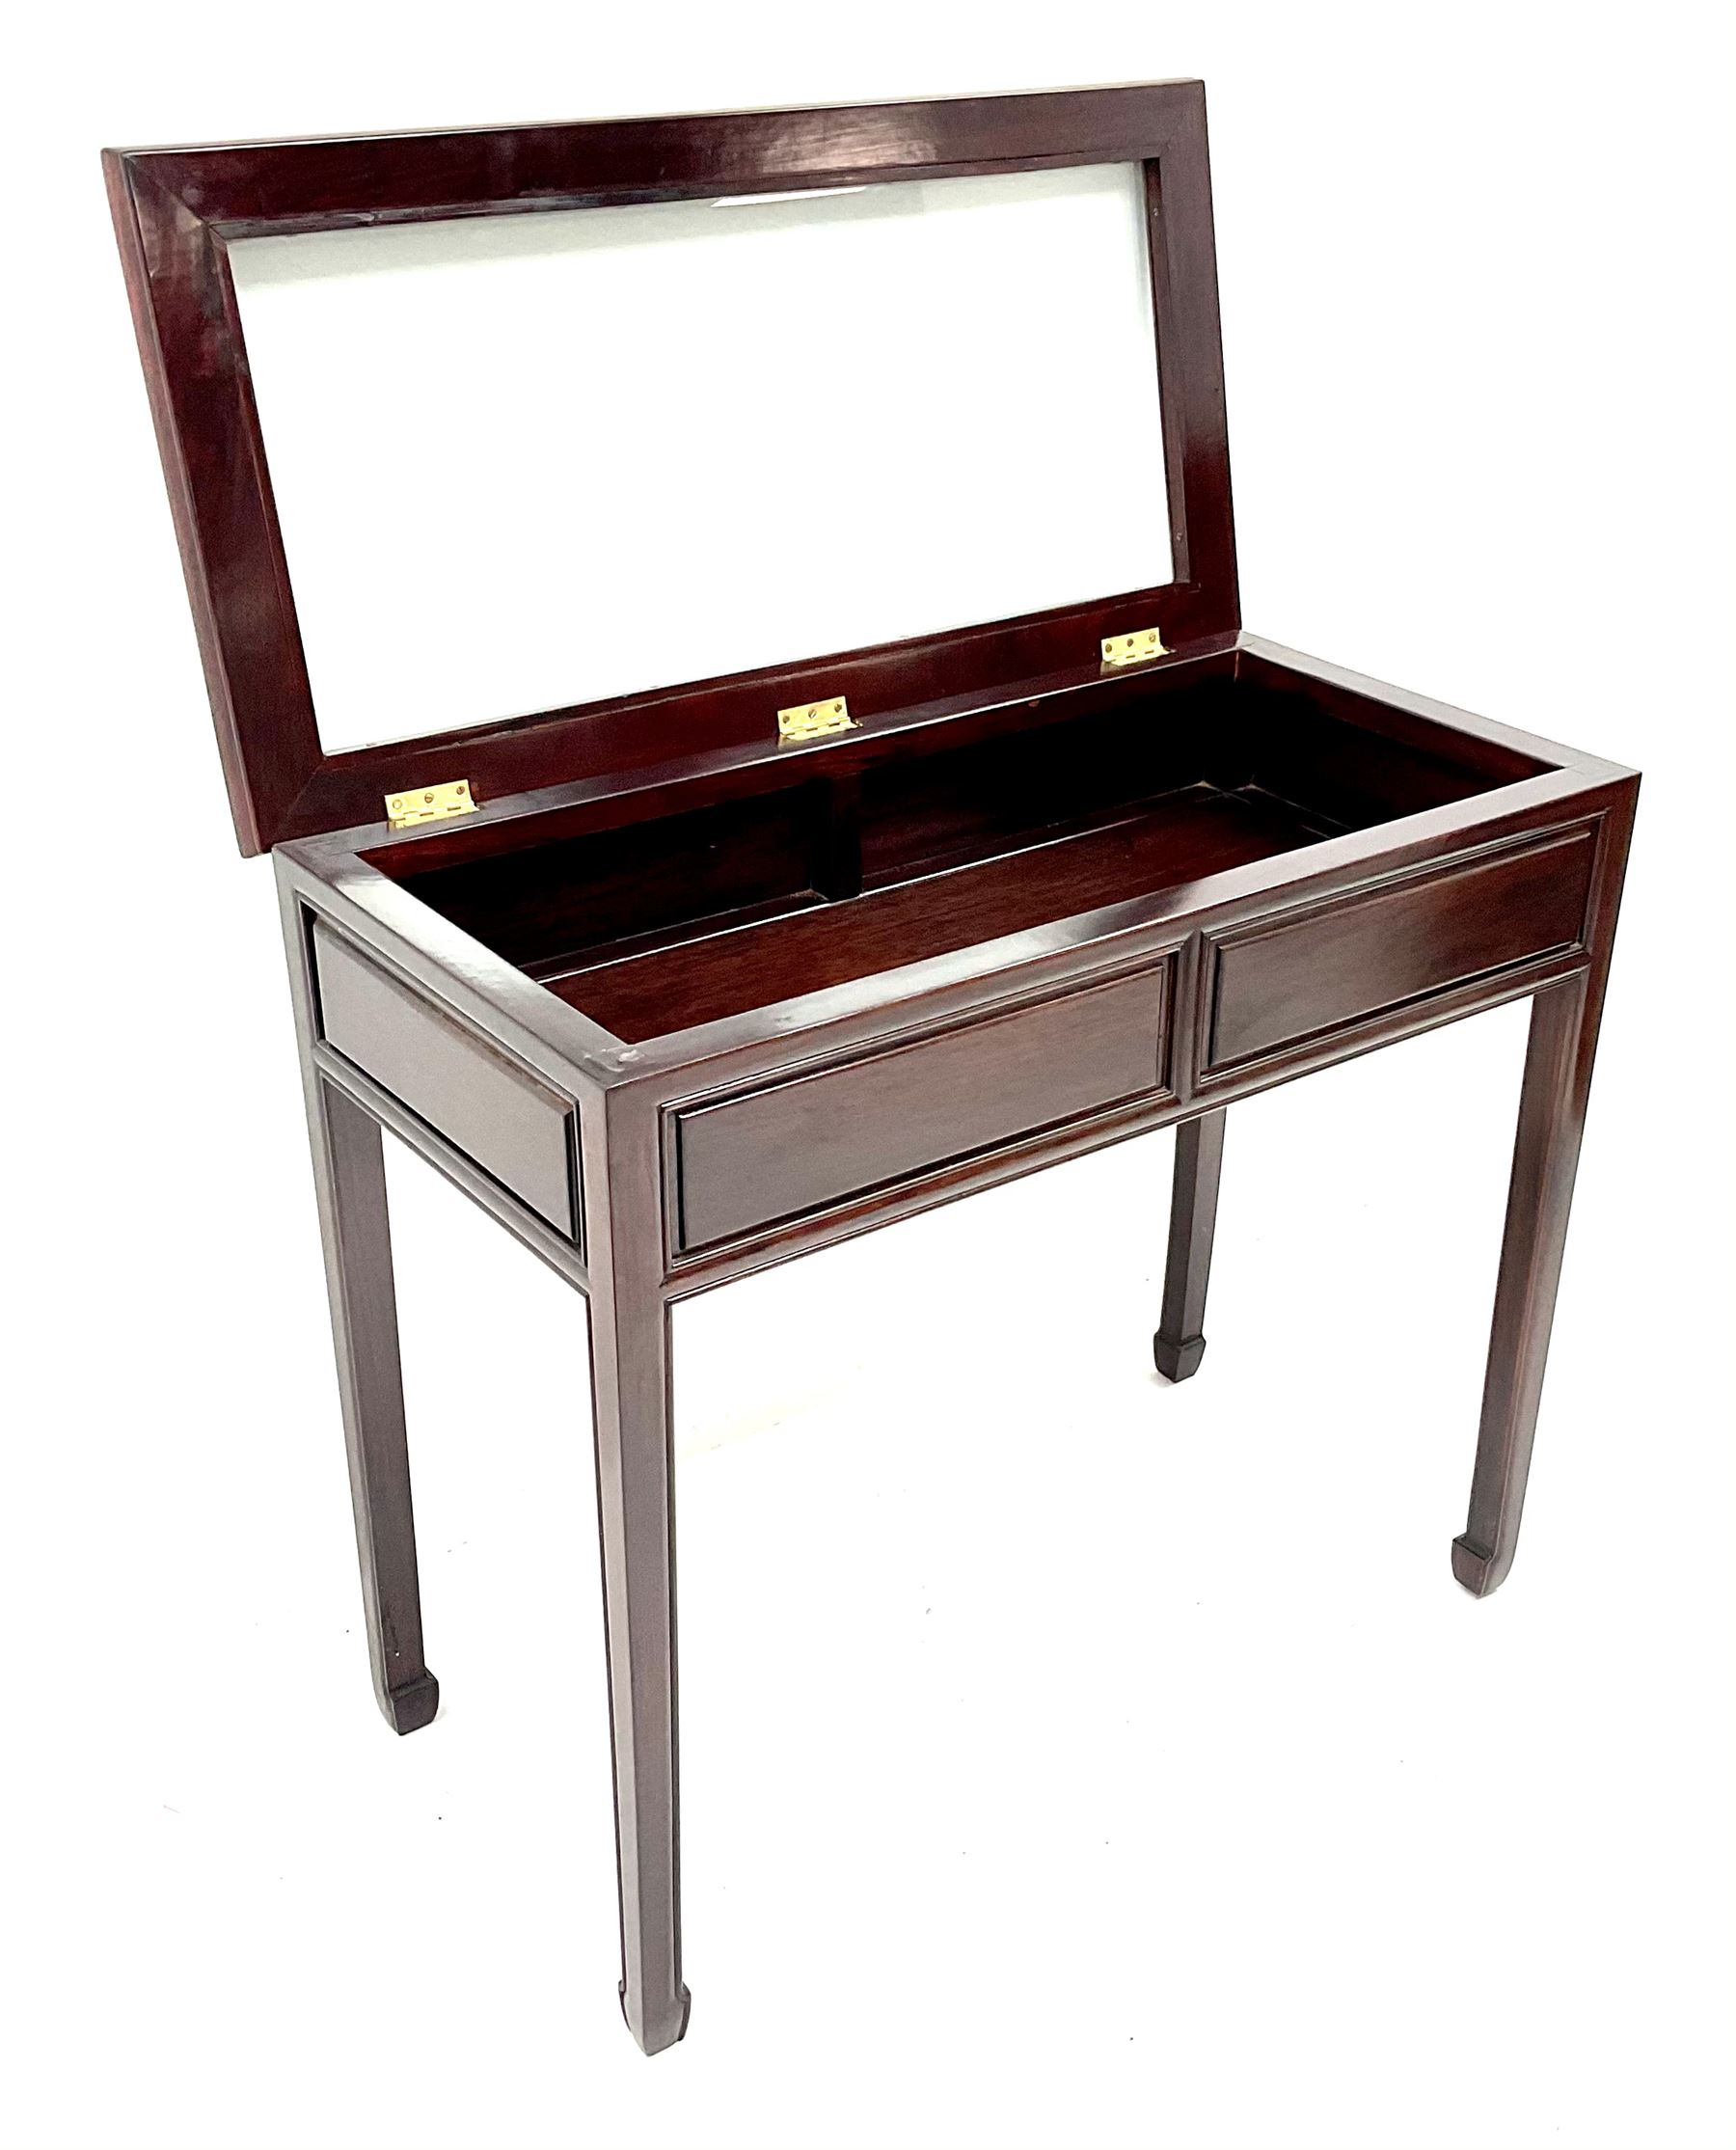 Chinese rosewood bijouterie table - Image 3 of 3